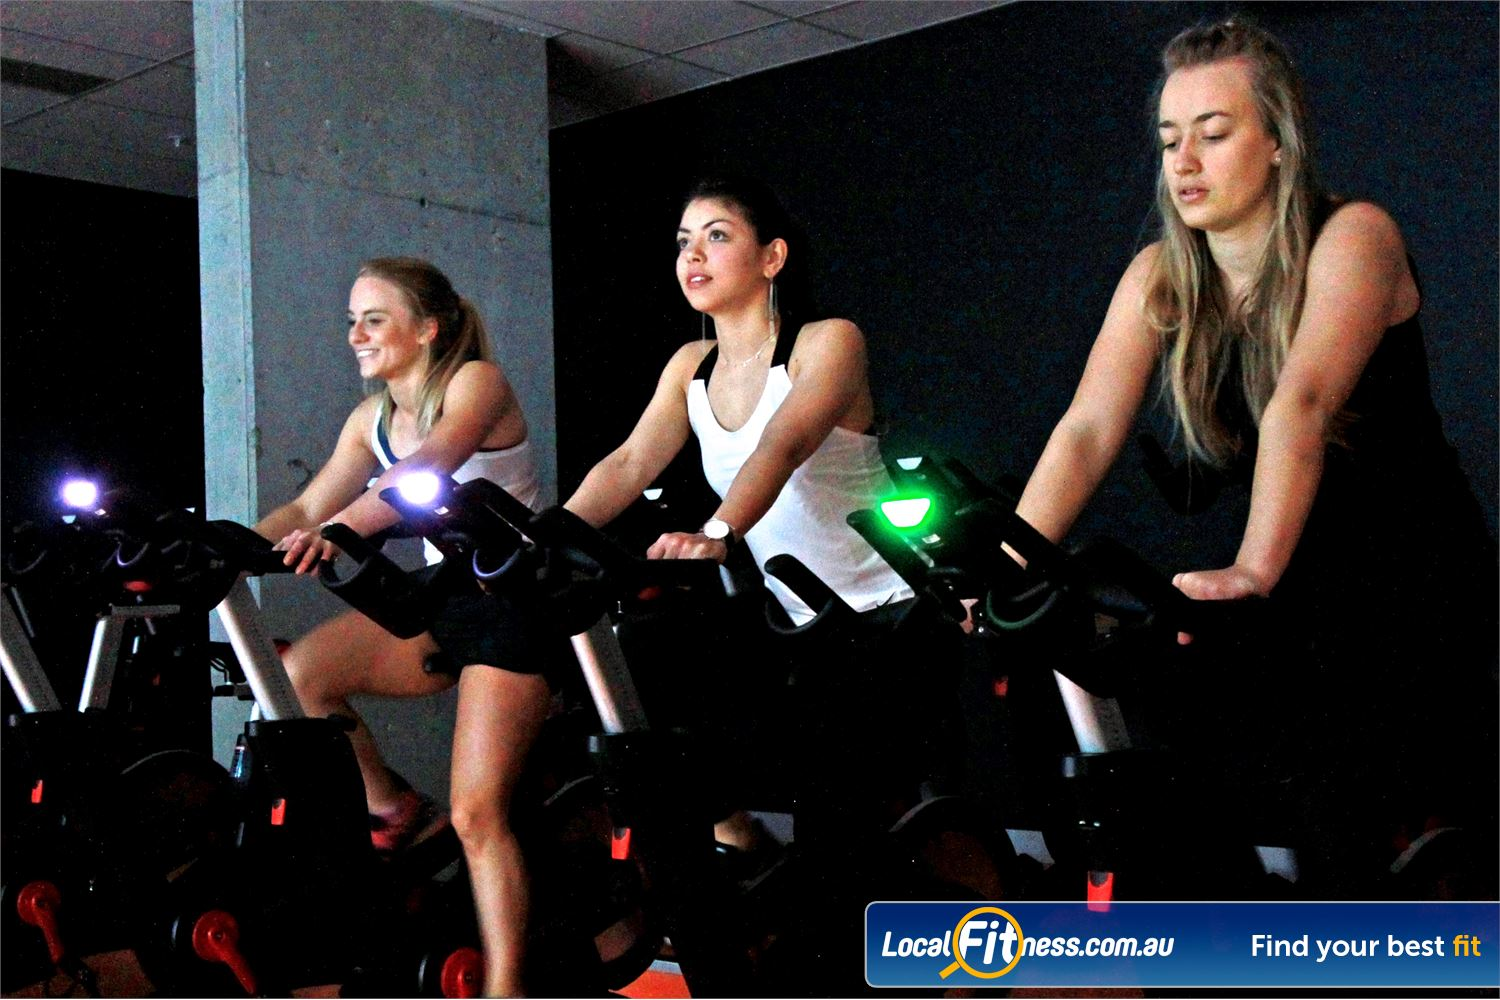 South Pacific Health Clubs Near Heatherton Training with the latest coach by colour technology to measure your intensity.